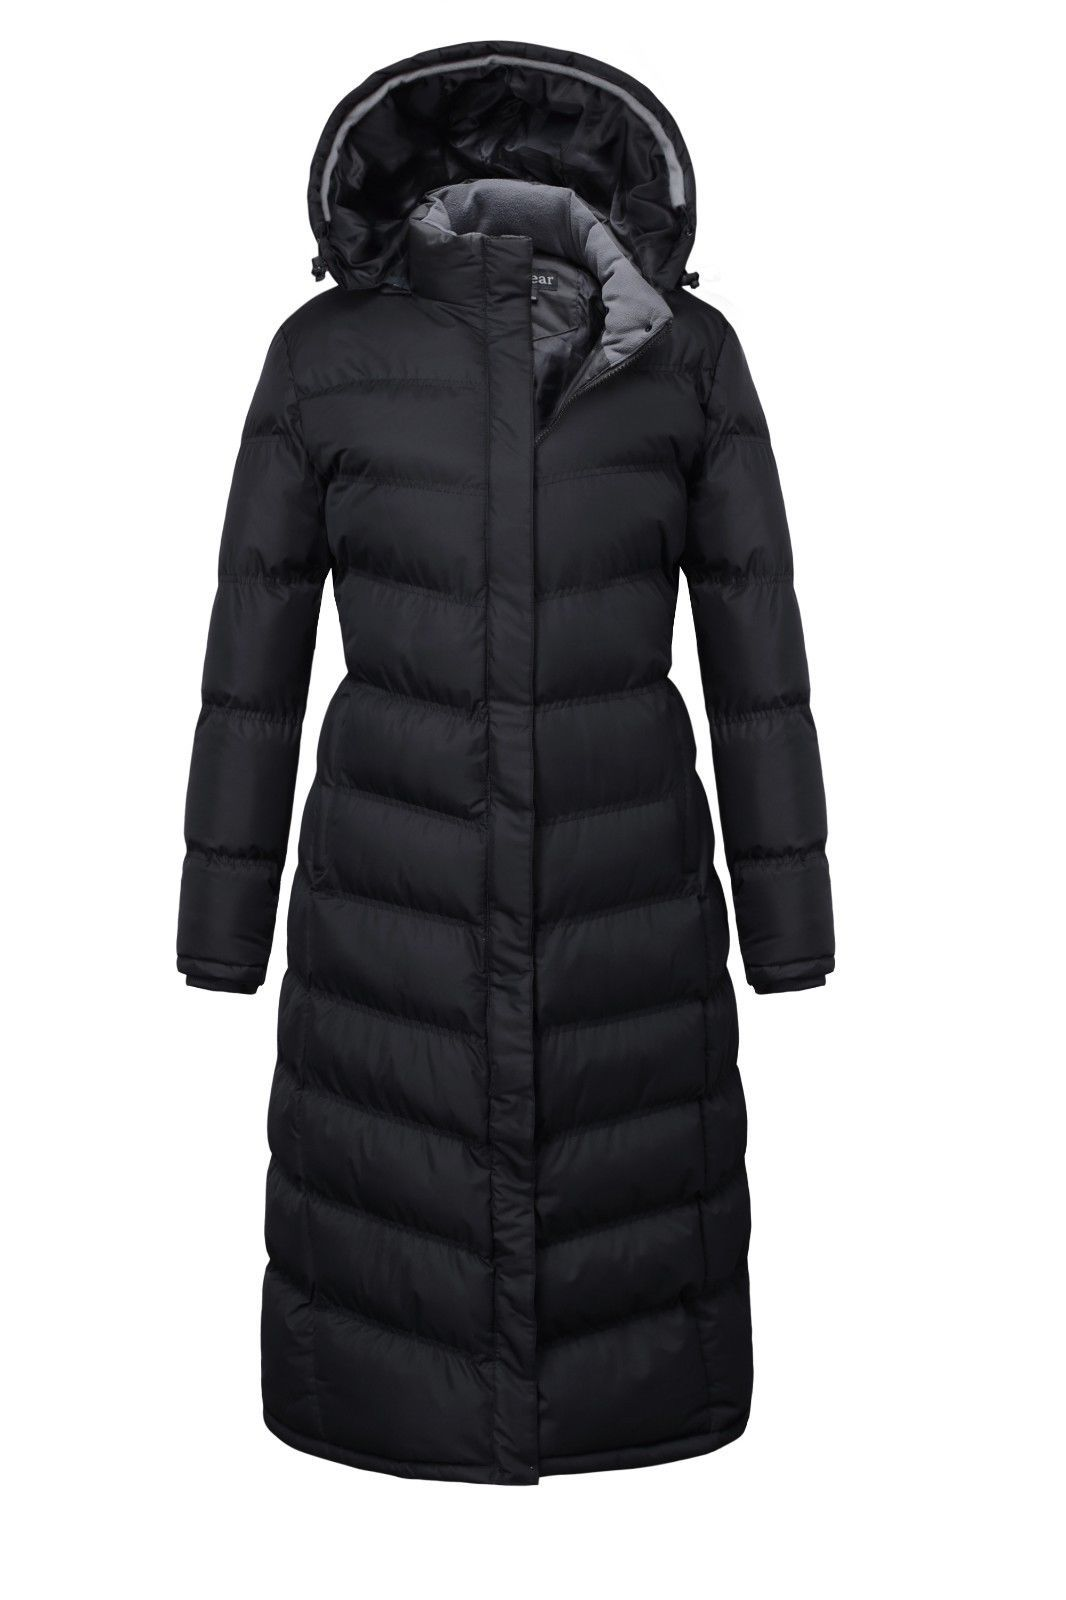 Women Winter Warm Full length Padded Quilted Puffer Coat Hood Jacket